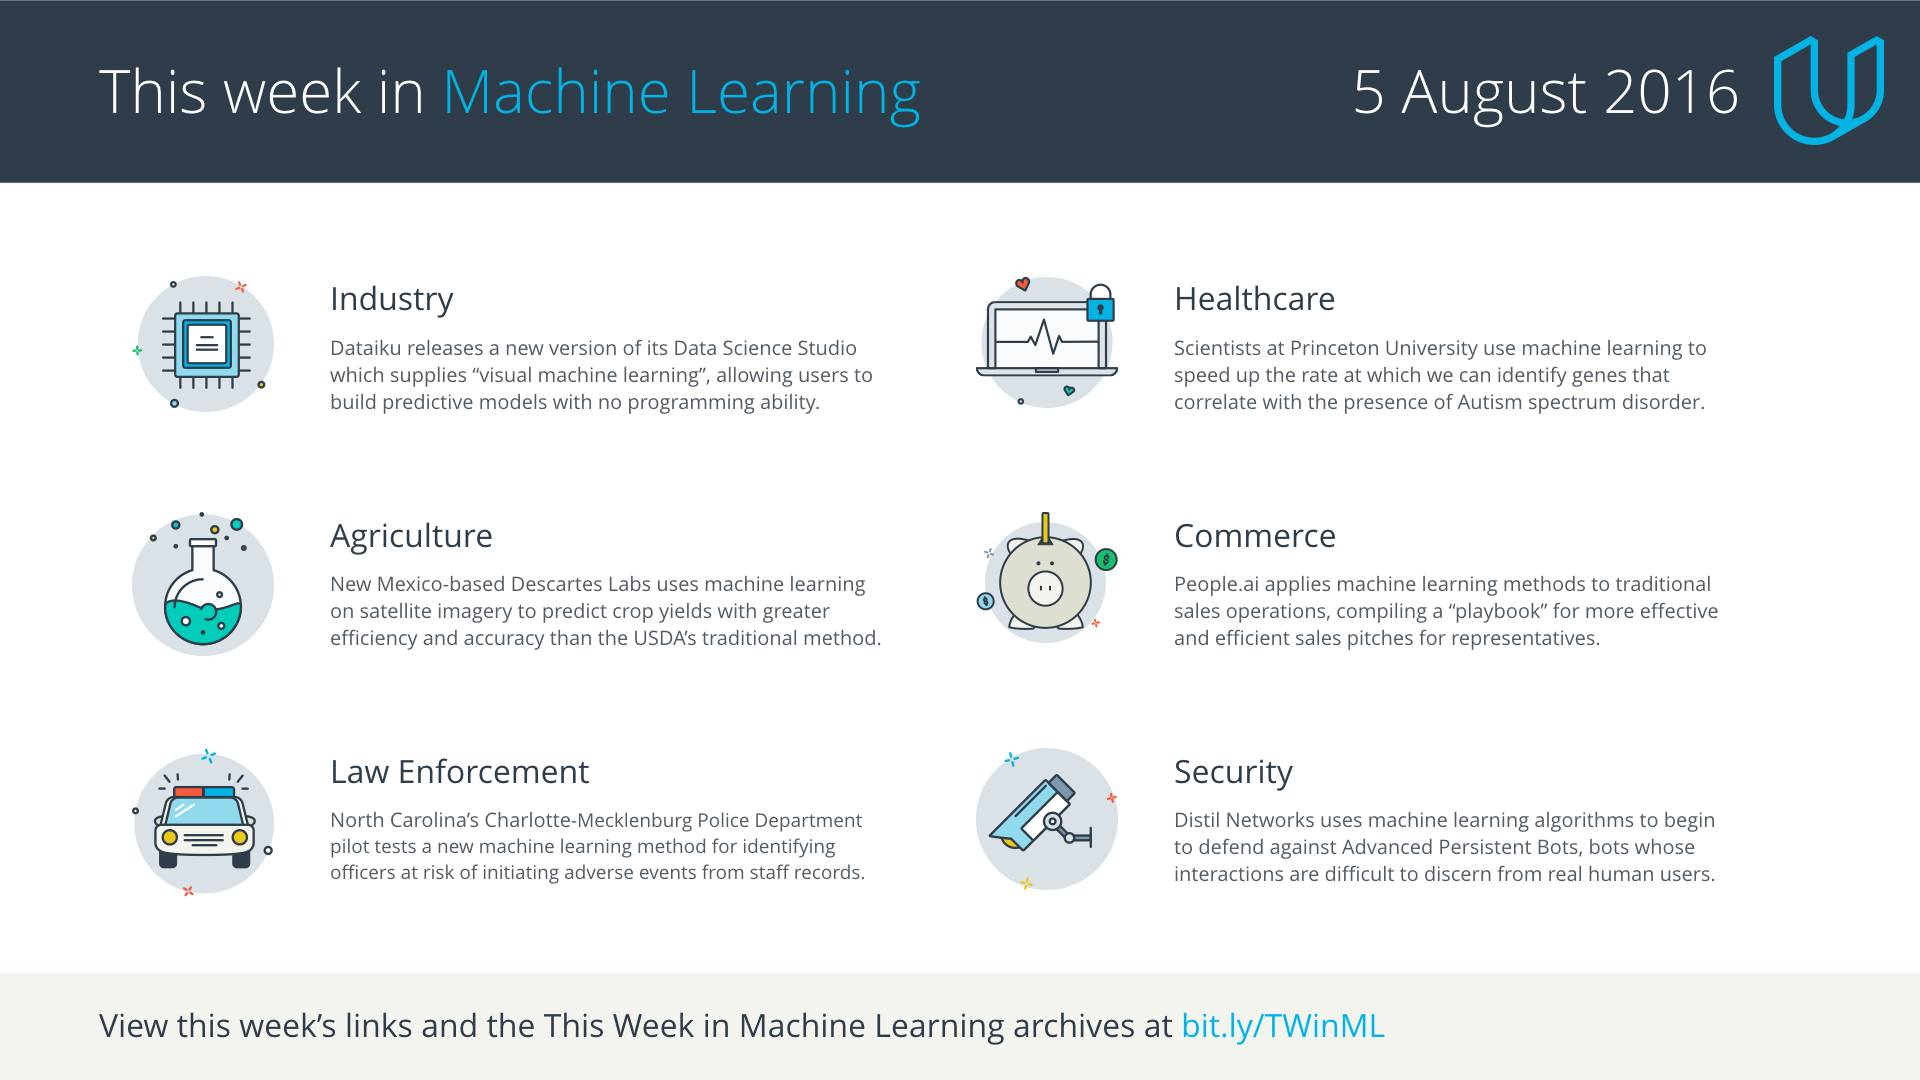 This Week in Machine Learning, 5 August 2016